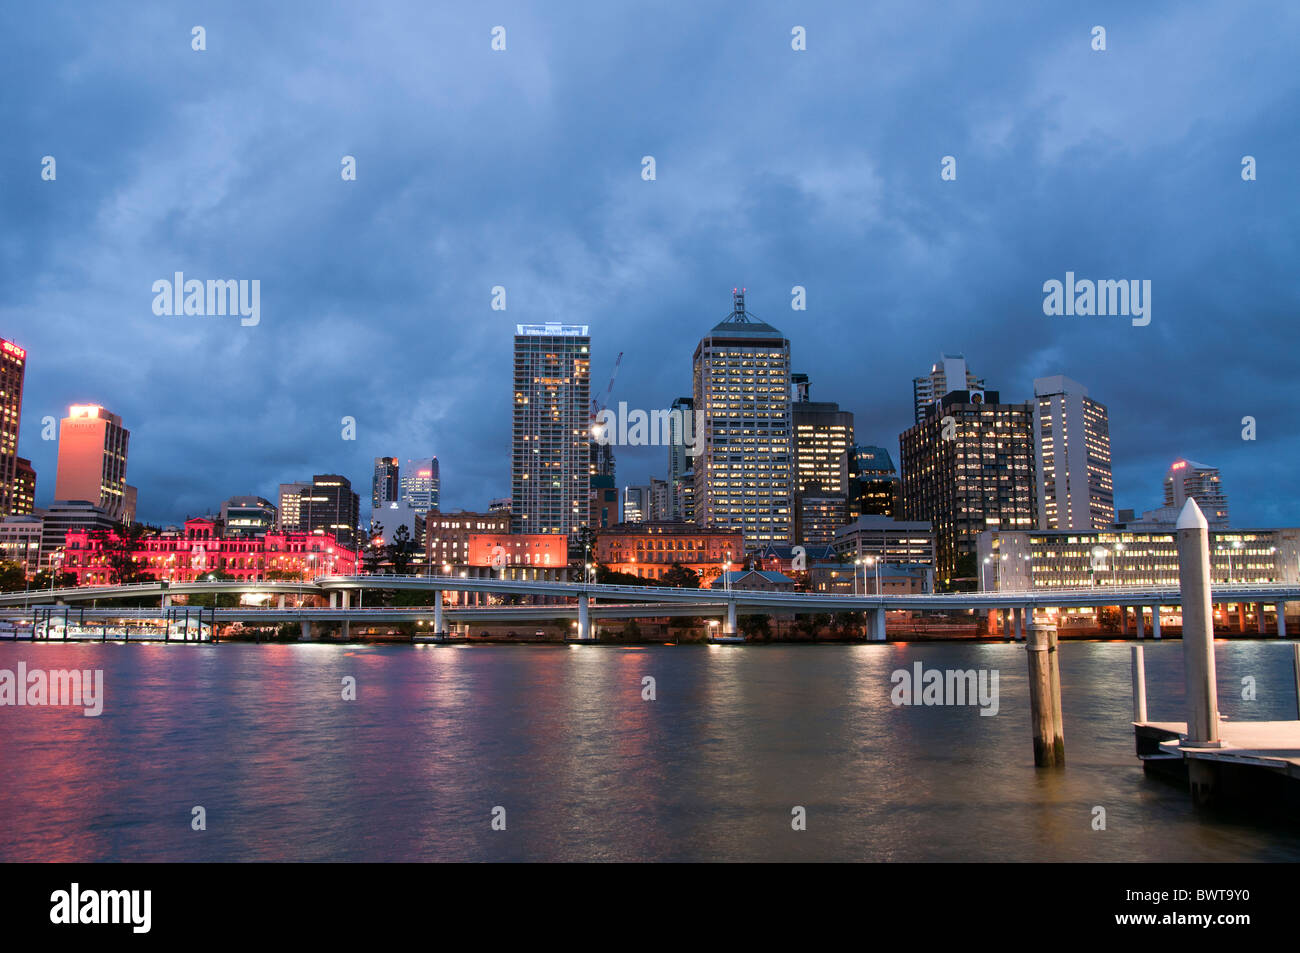 Looking at the Brisbane skyline at dusk across the Brisbane River from Southbank. - Stock Image